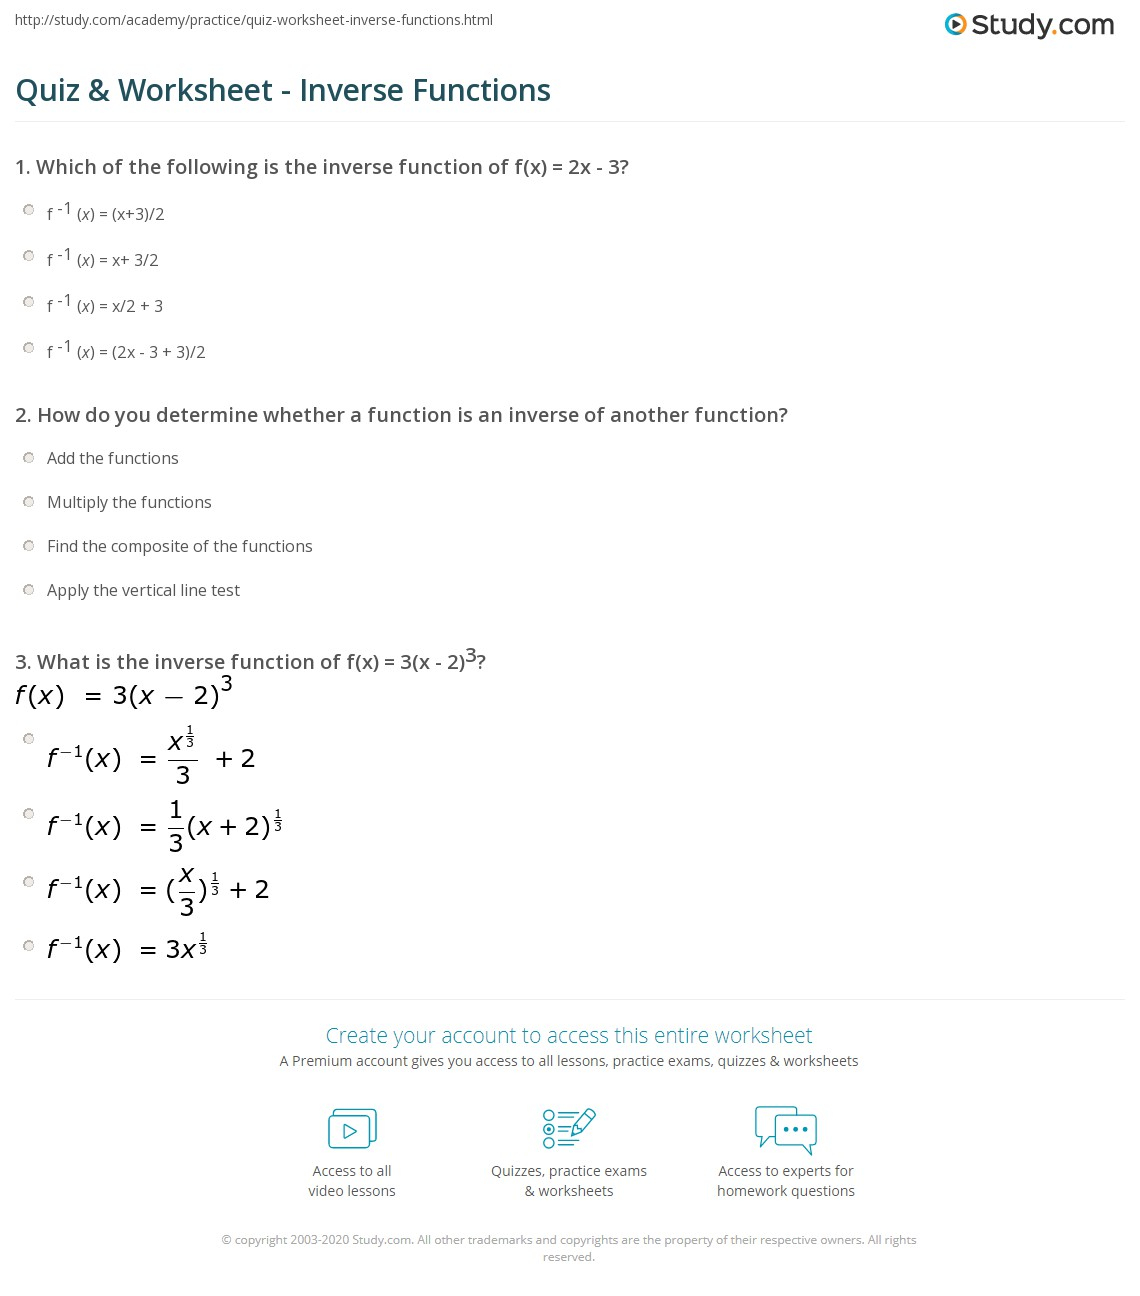 Algebra 2 Inverse Functions Worksheet - Promotiontablecovers